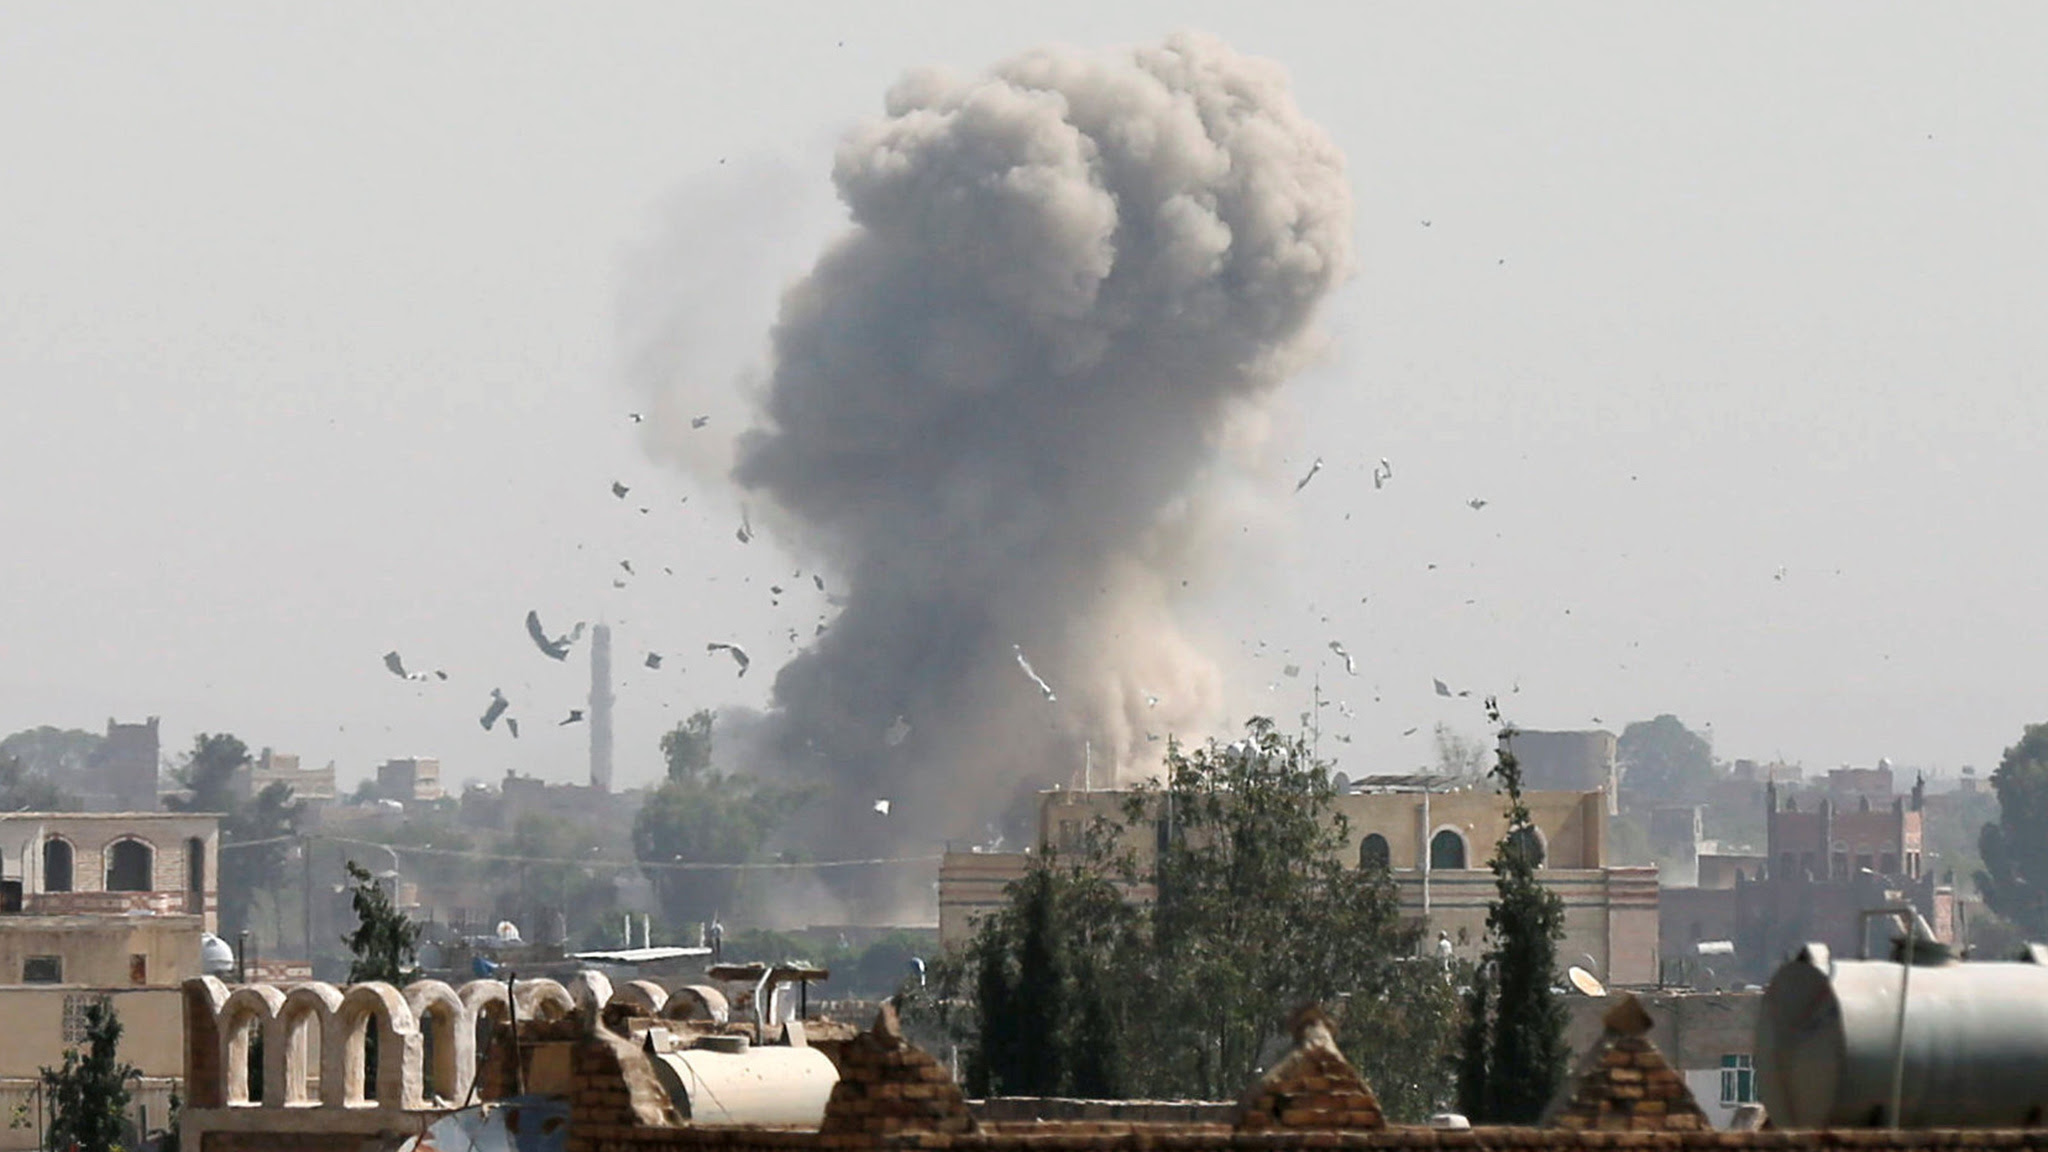 Smoke and debris rise from the site of a Saudi-led air strike in Sanaa